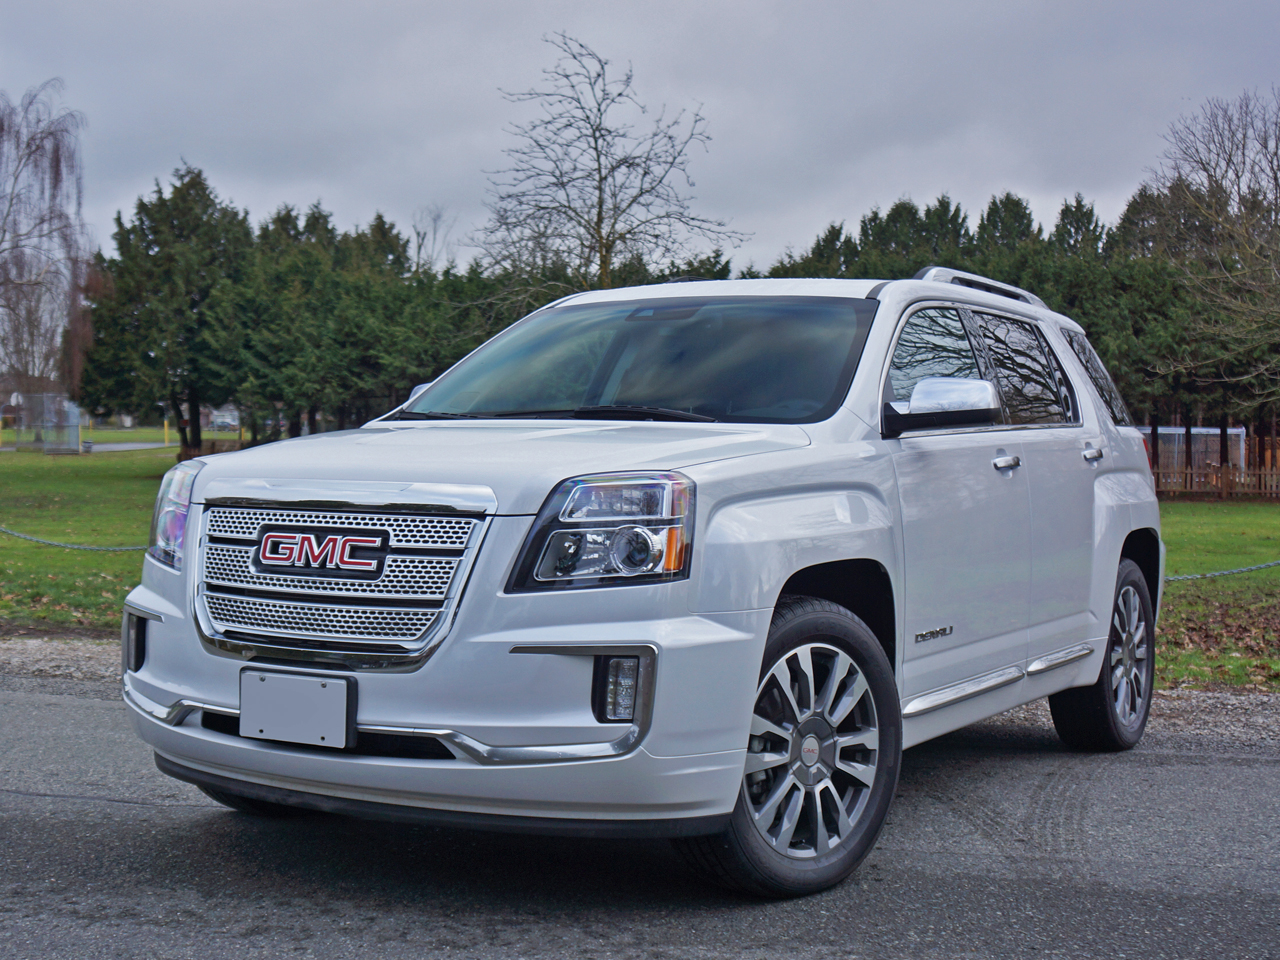 2016 gmc terrain denali awd road test review carcostcanada. Black Bedroom Furniture Sets. Home Design Ideas